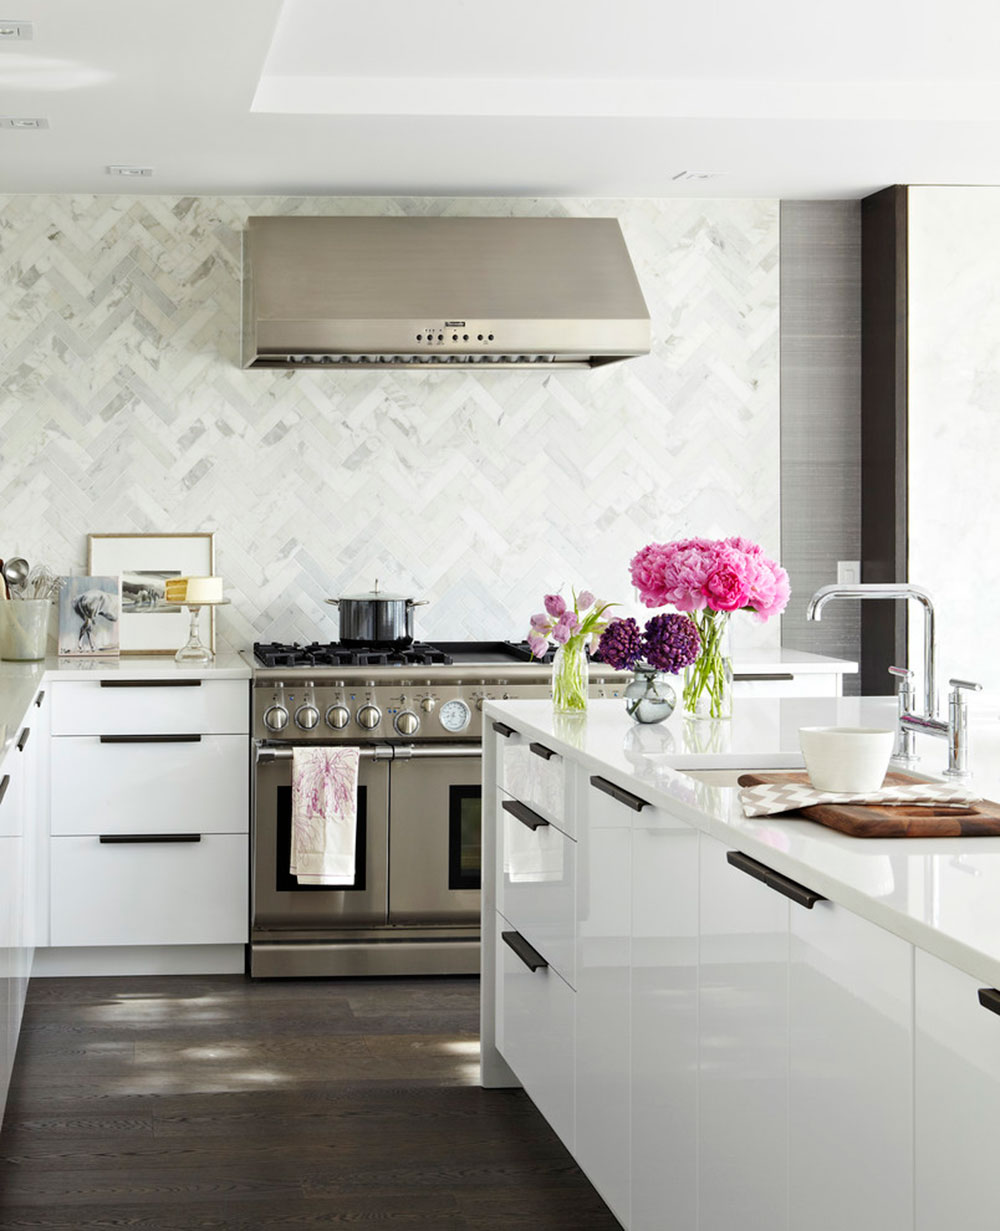 Wonderful Examples of Kitchen Makeover8 Wonderful Examples of Kitchen Makeover